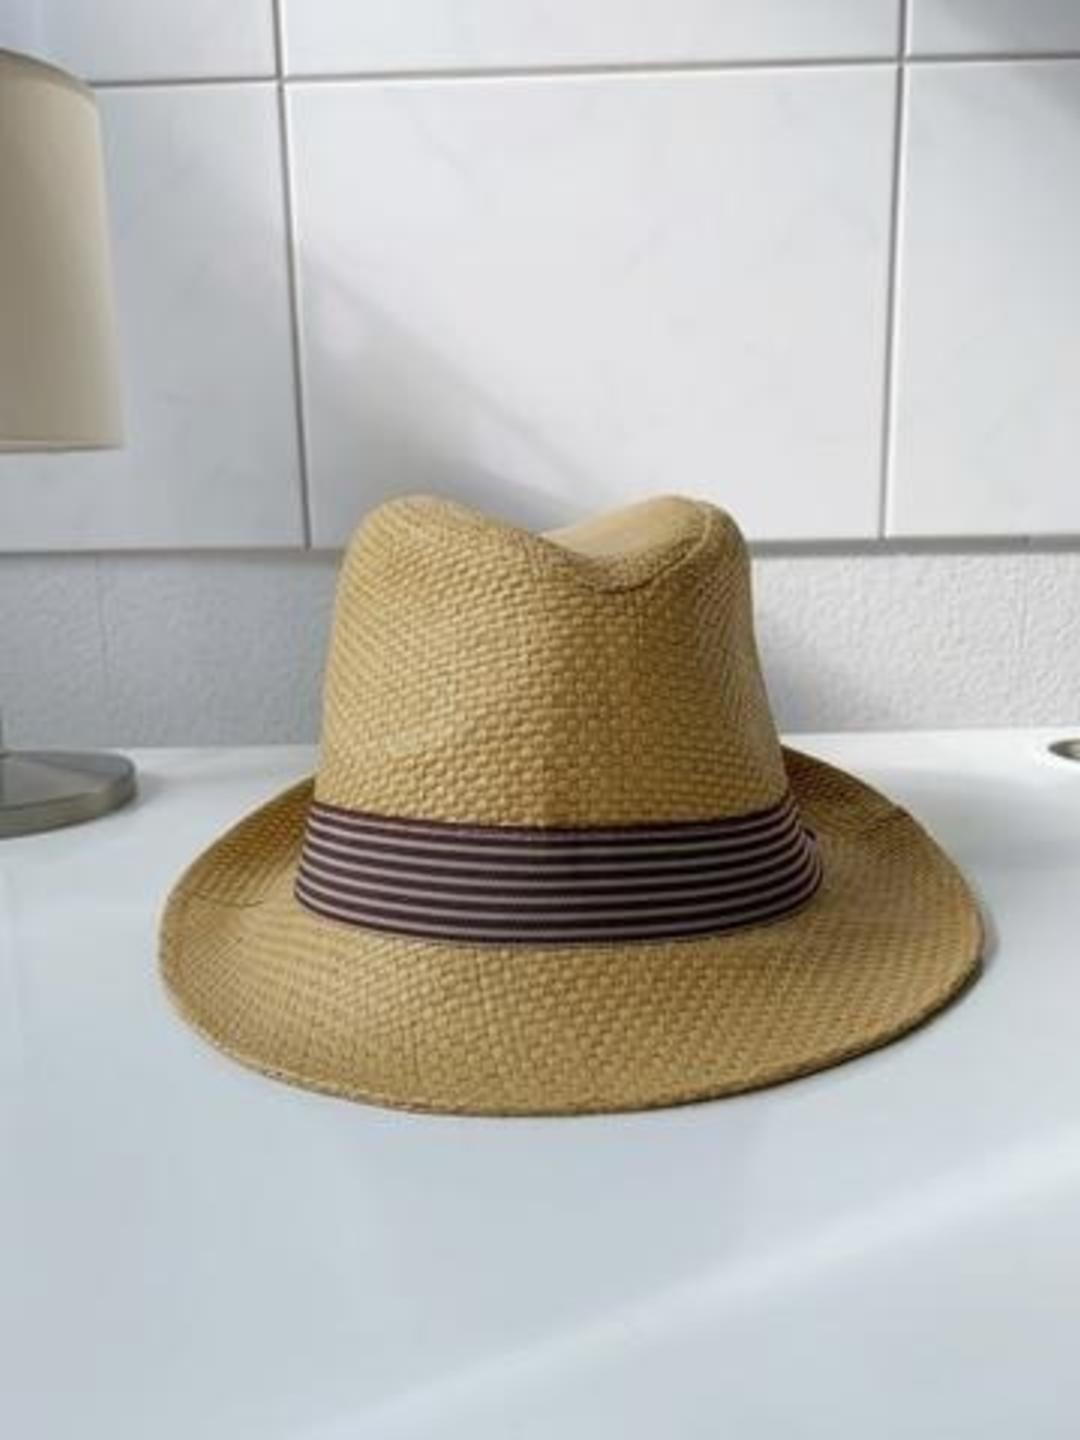 Women's hats & caps - H&M photo 2